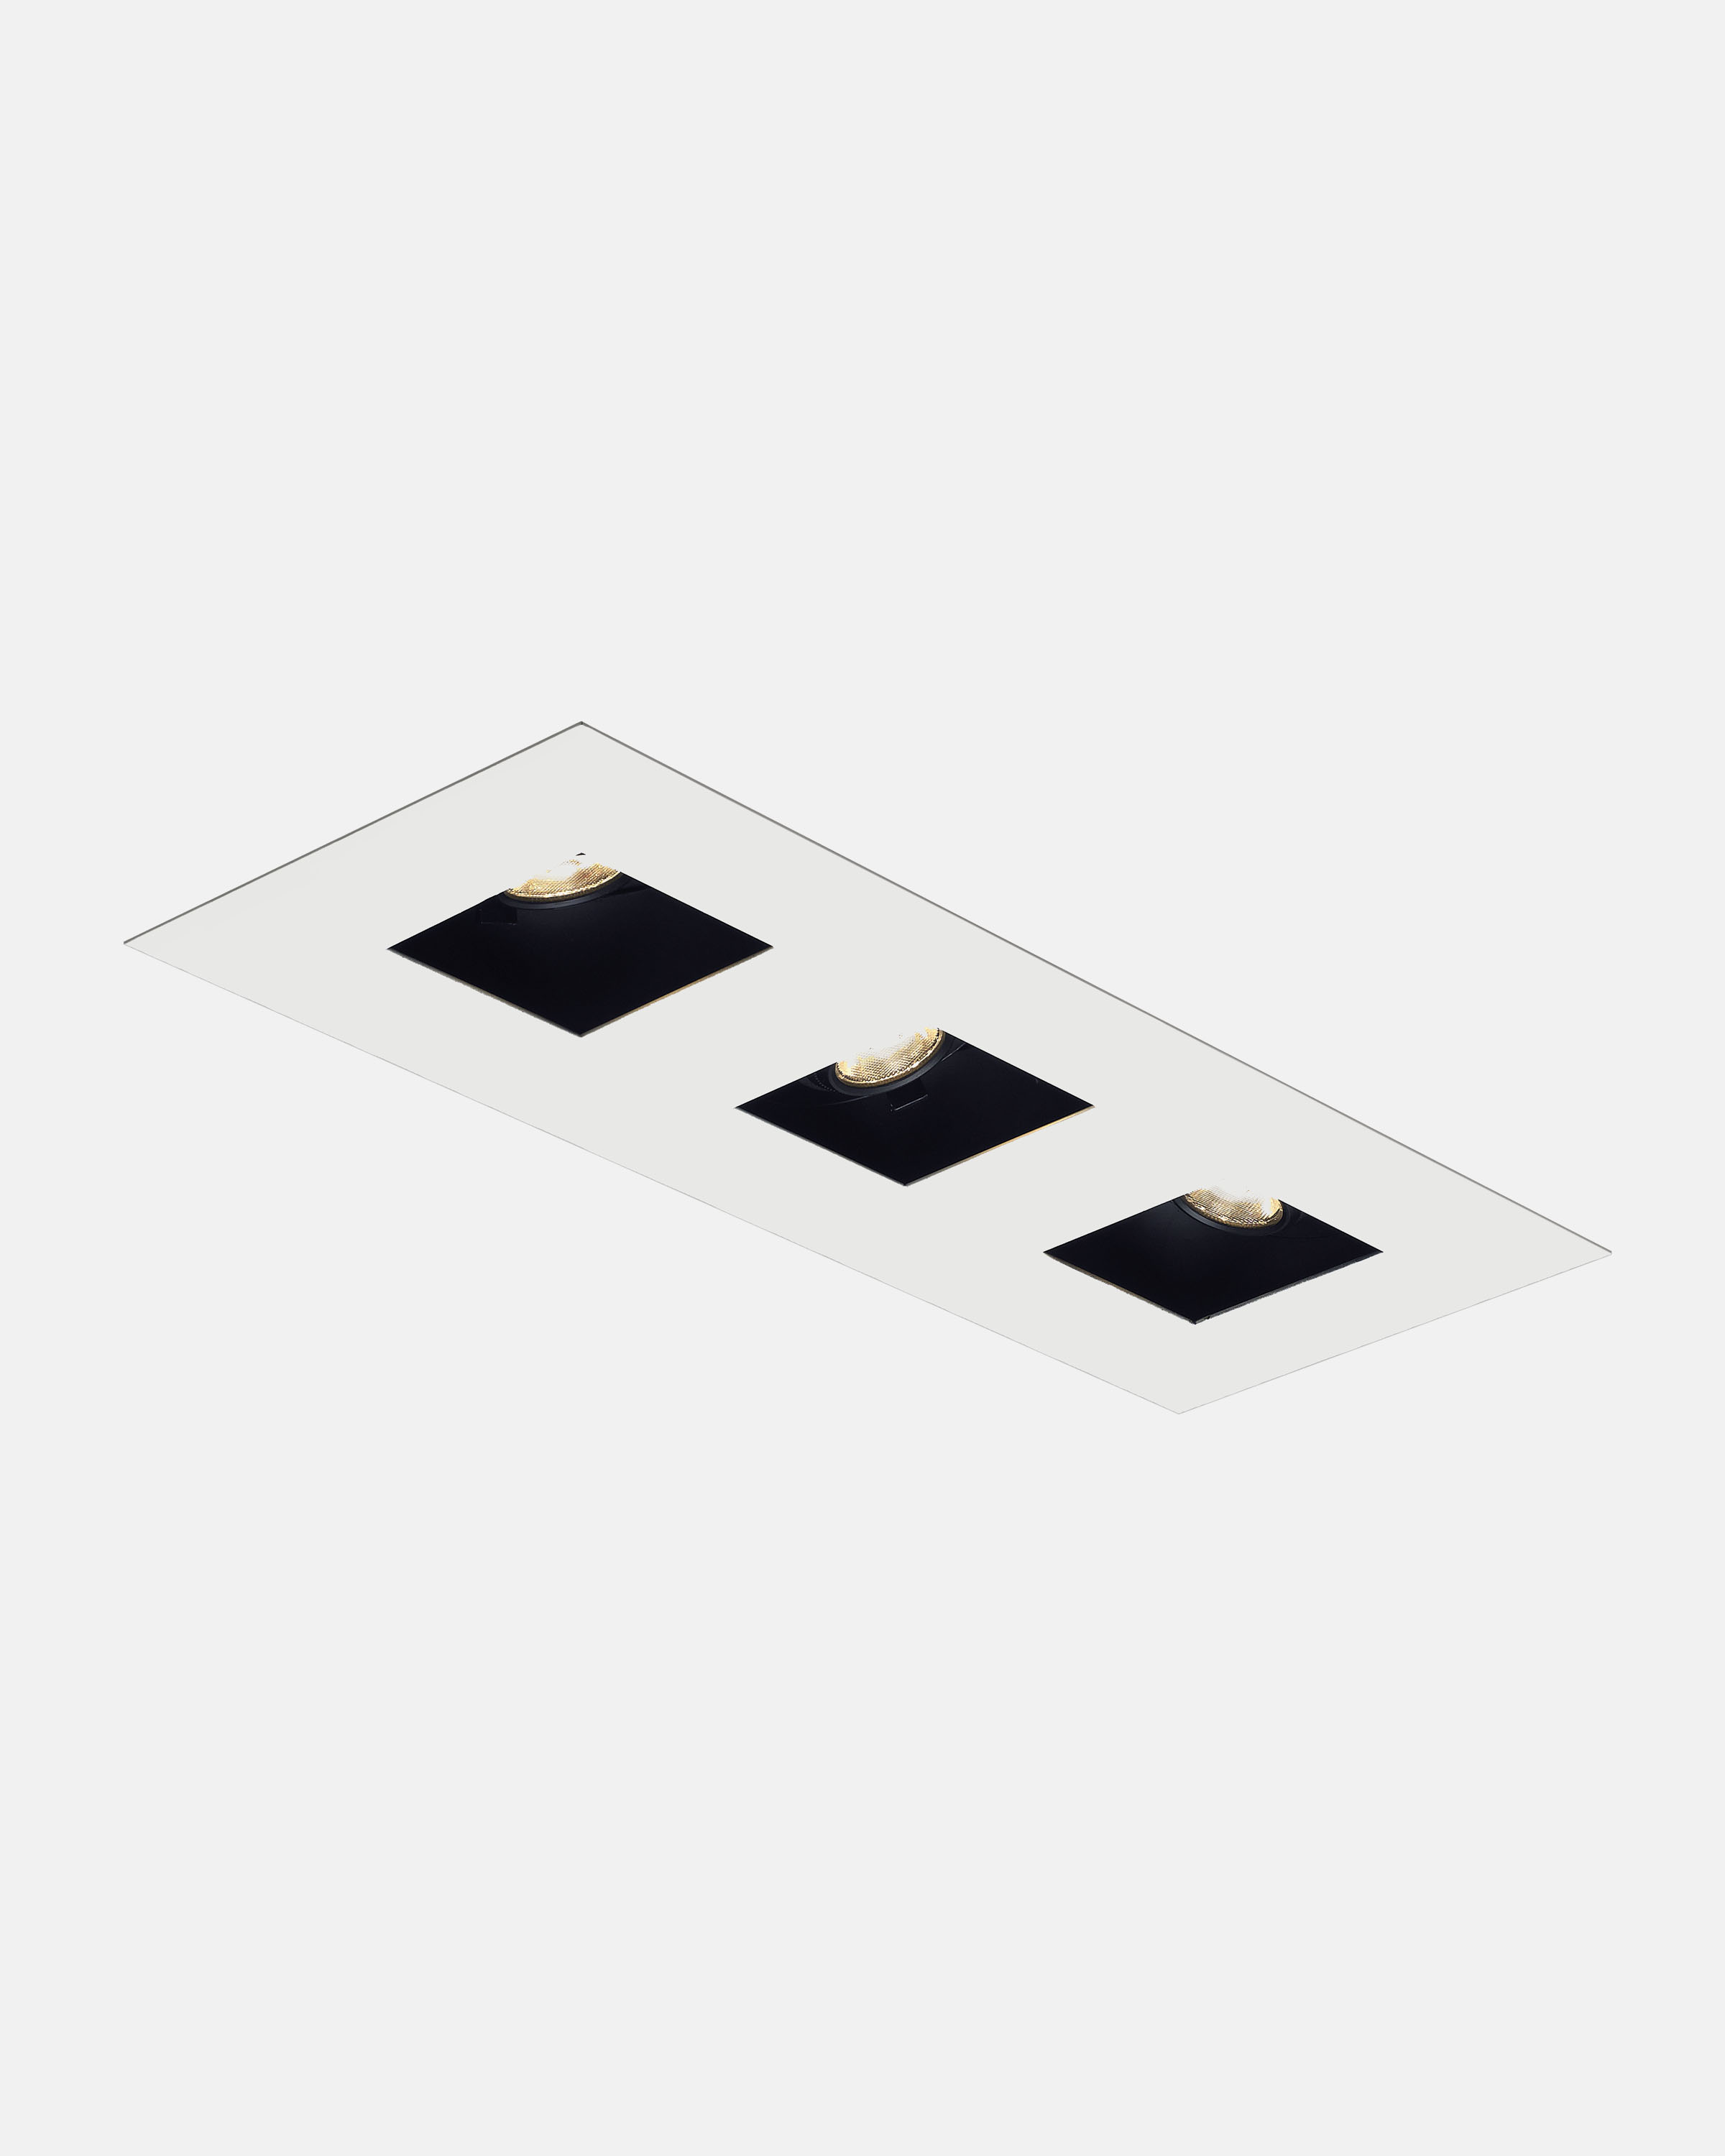 tech lighting introduces element led multiples